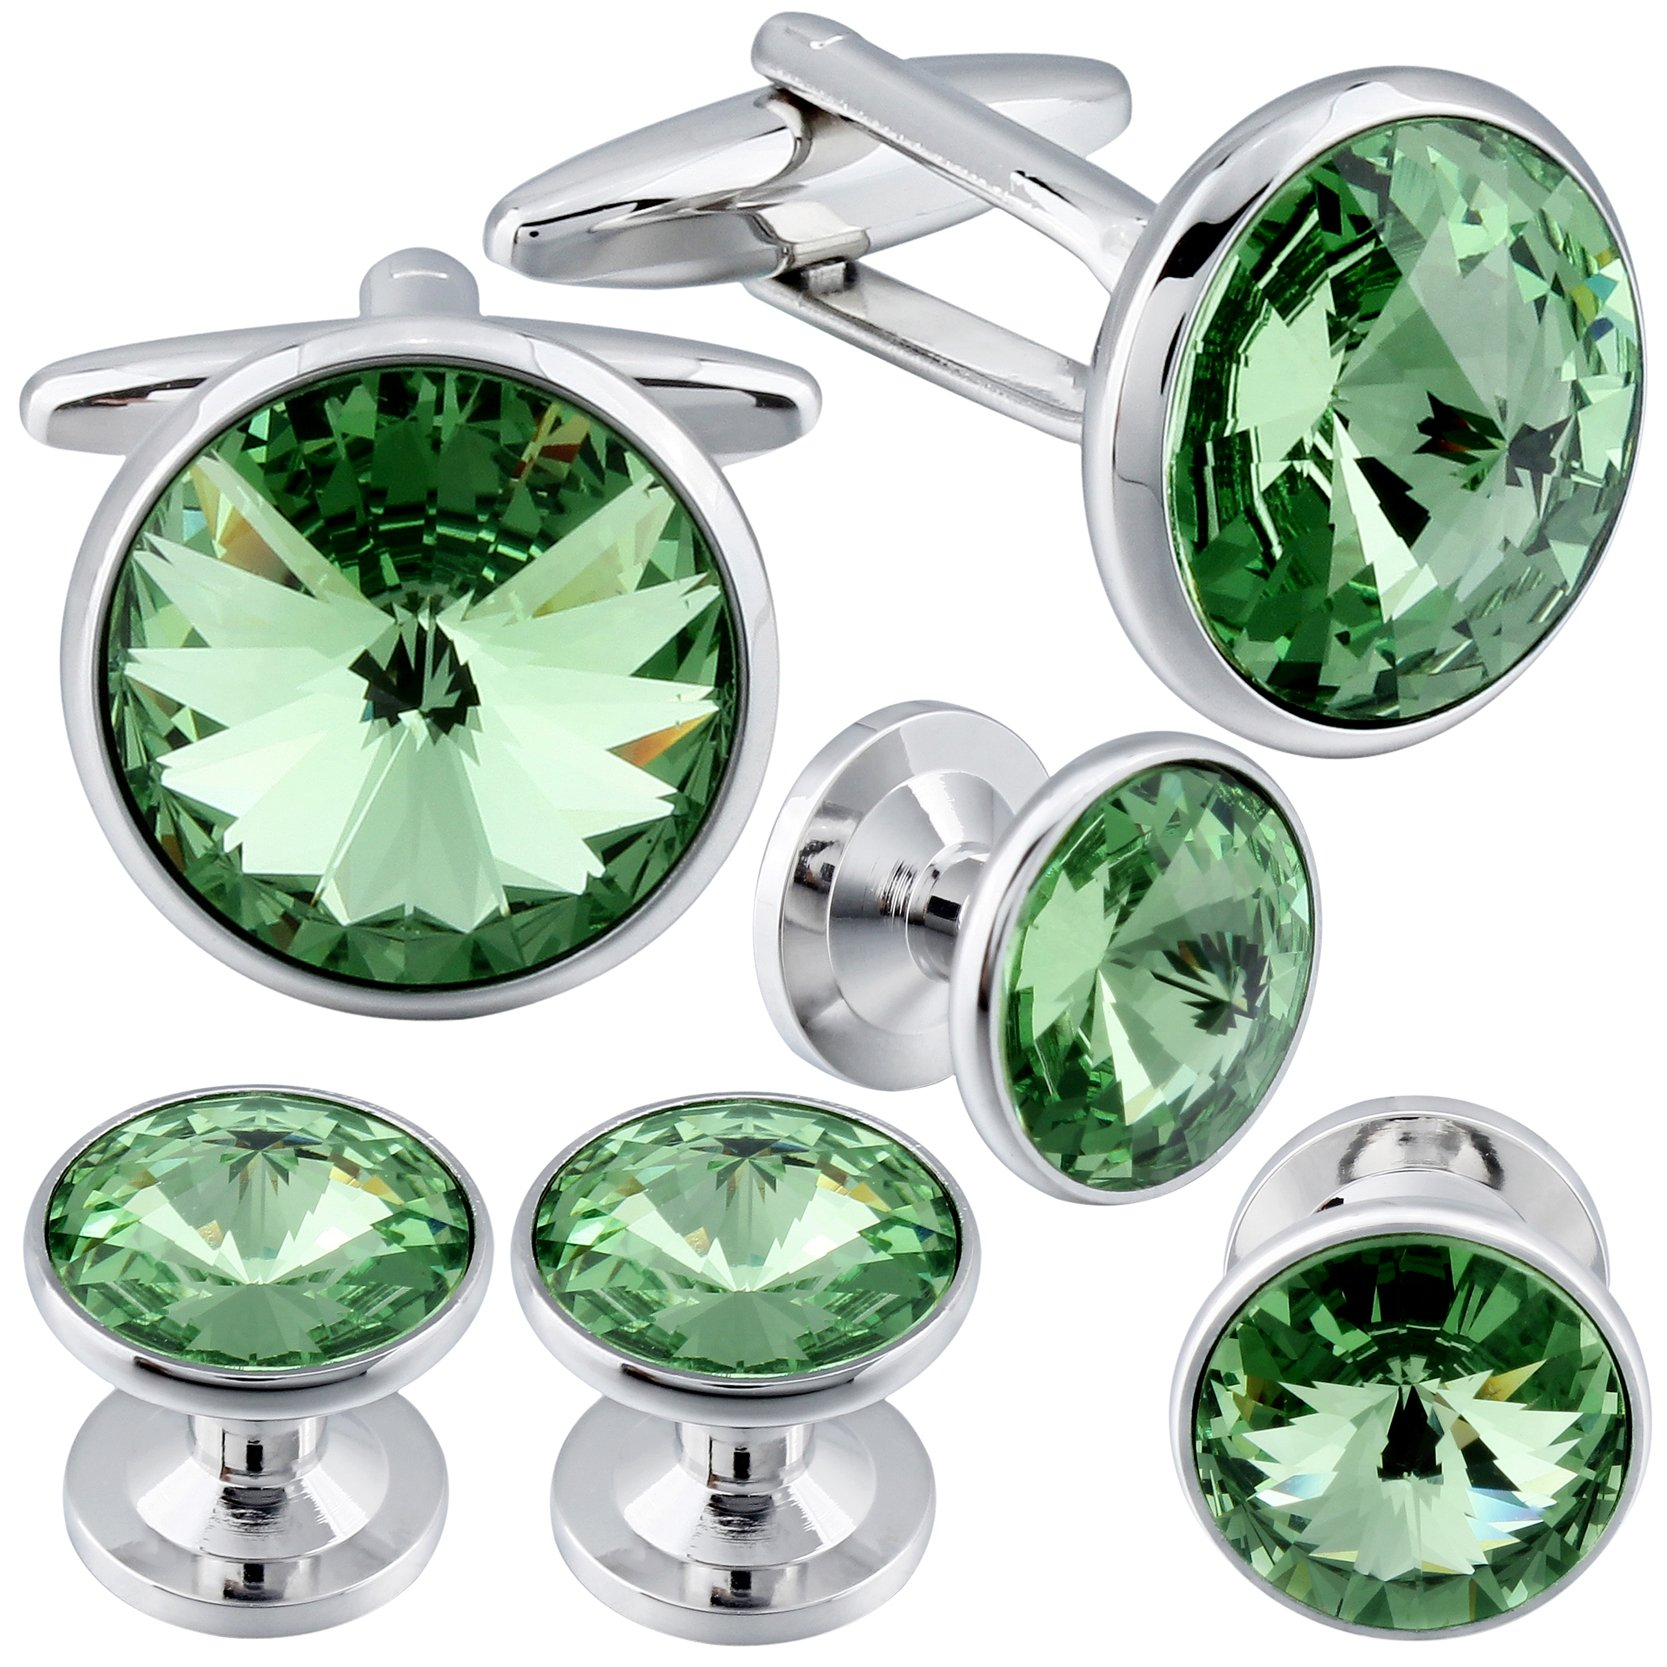 HAWSON Cufflinks and Studs Tuxedo Set Silver Color with Swarovski Crystals in Green